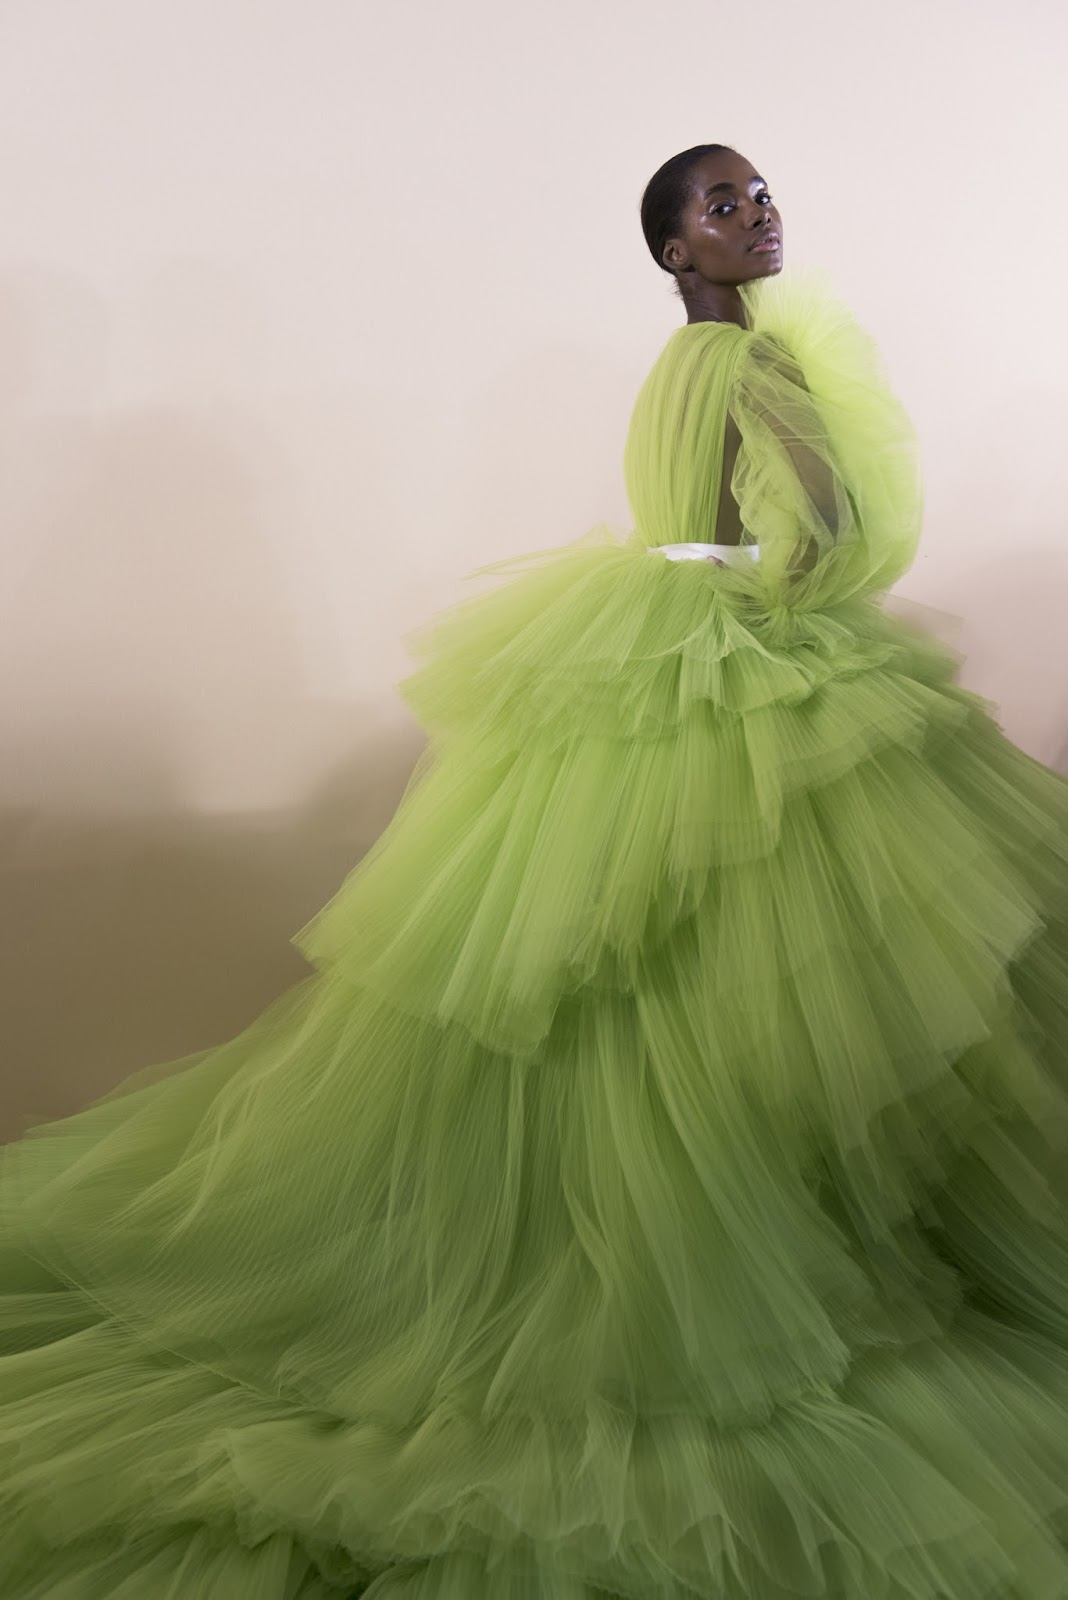 Fabulous Mive Tulle Gowns To Make You Swoon